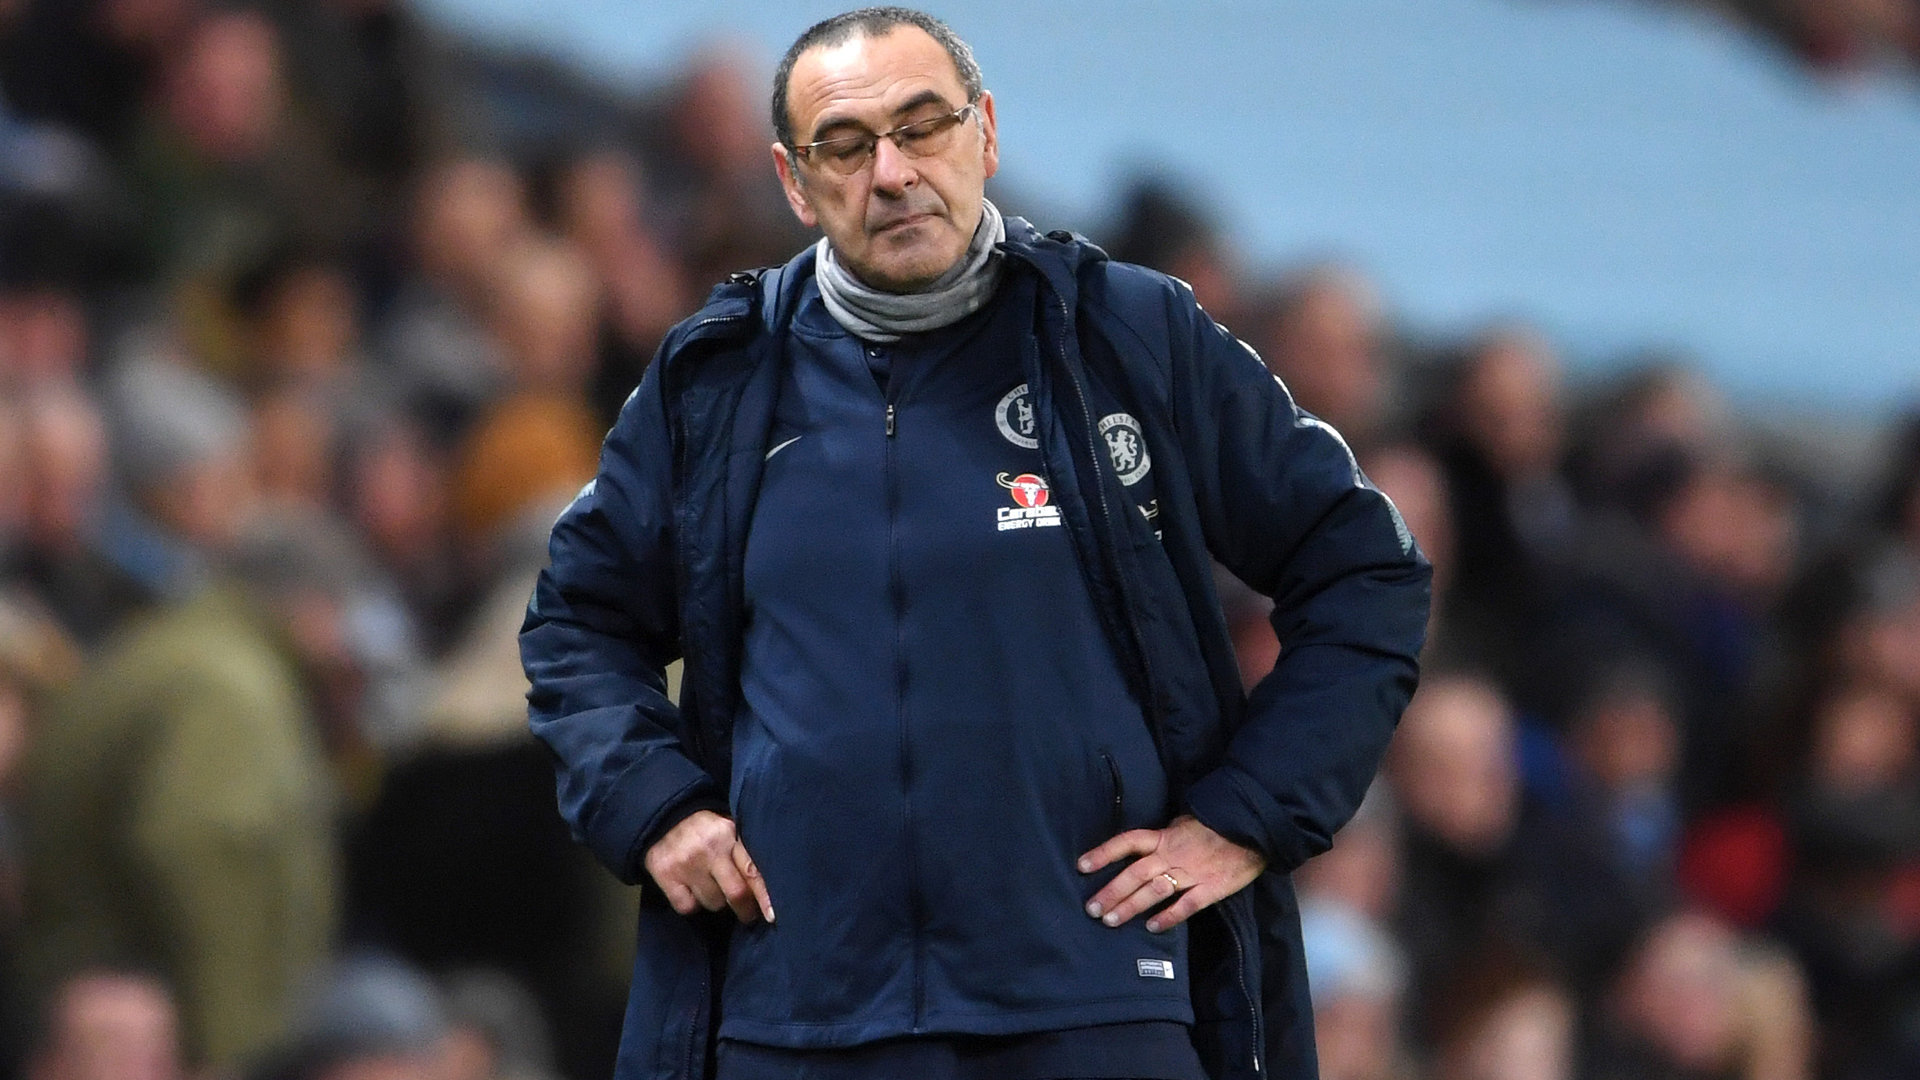 Sarri: My job is always at risk